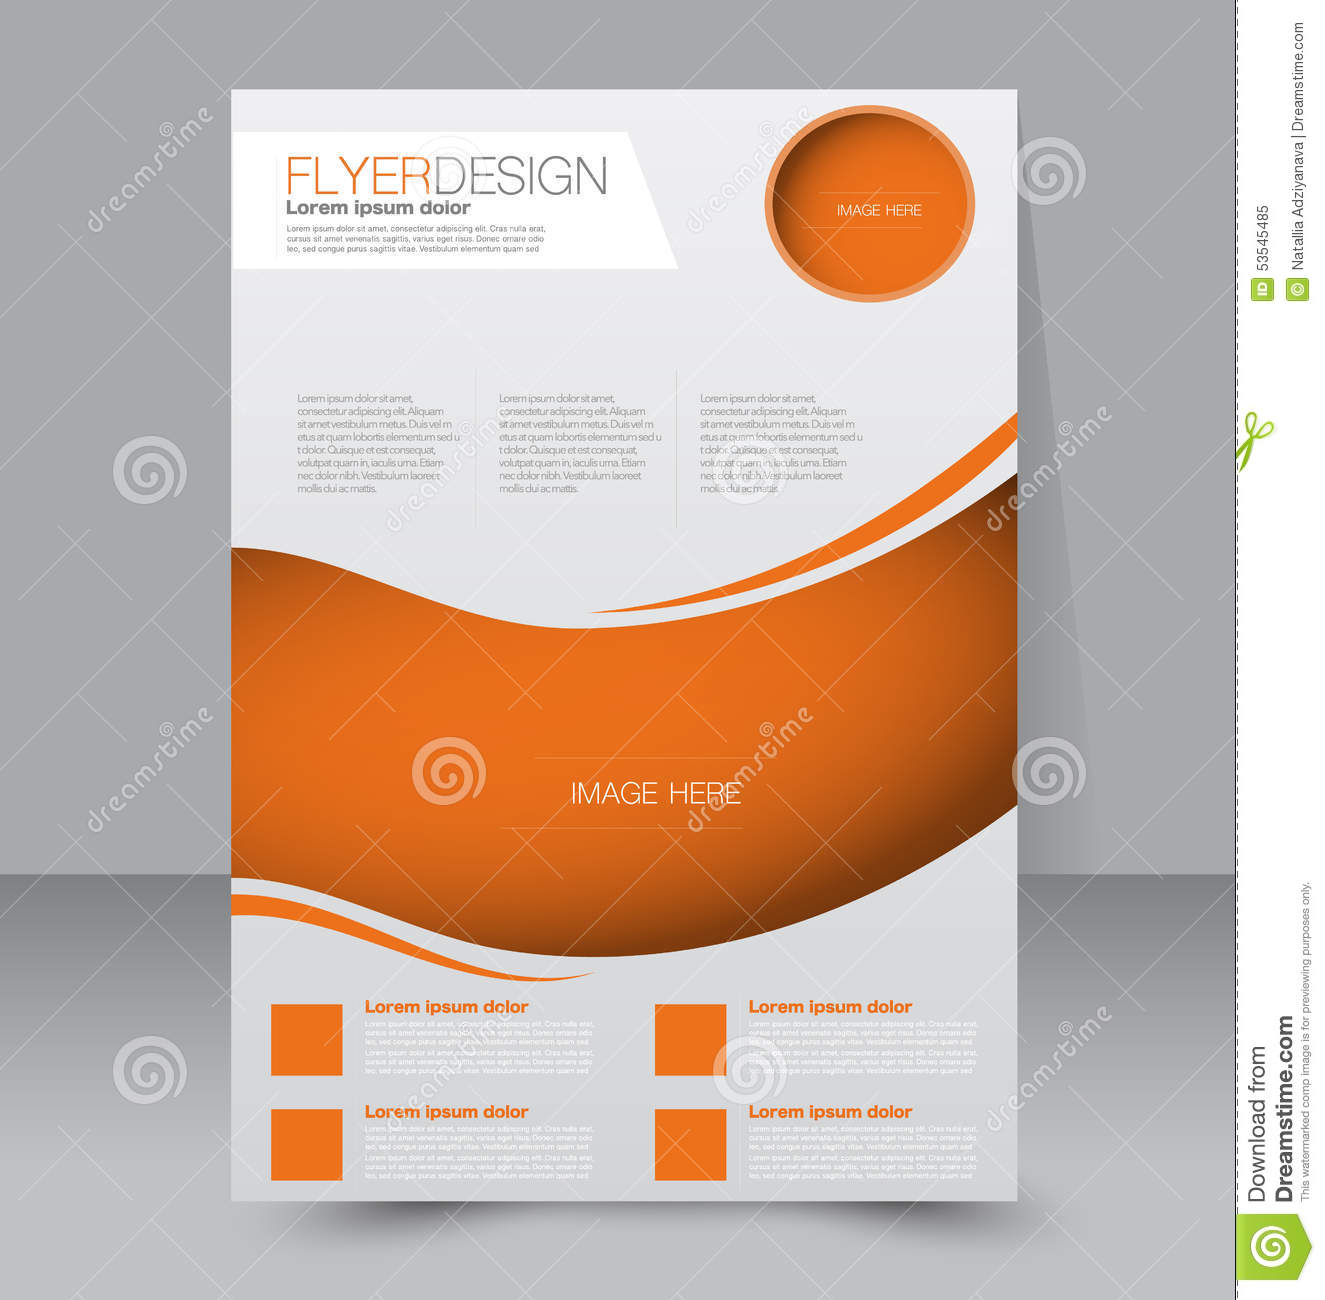 Flyer template business brochure editable a4 poster for Free templates for brochures and flyers